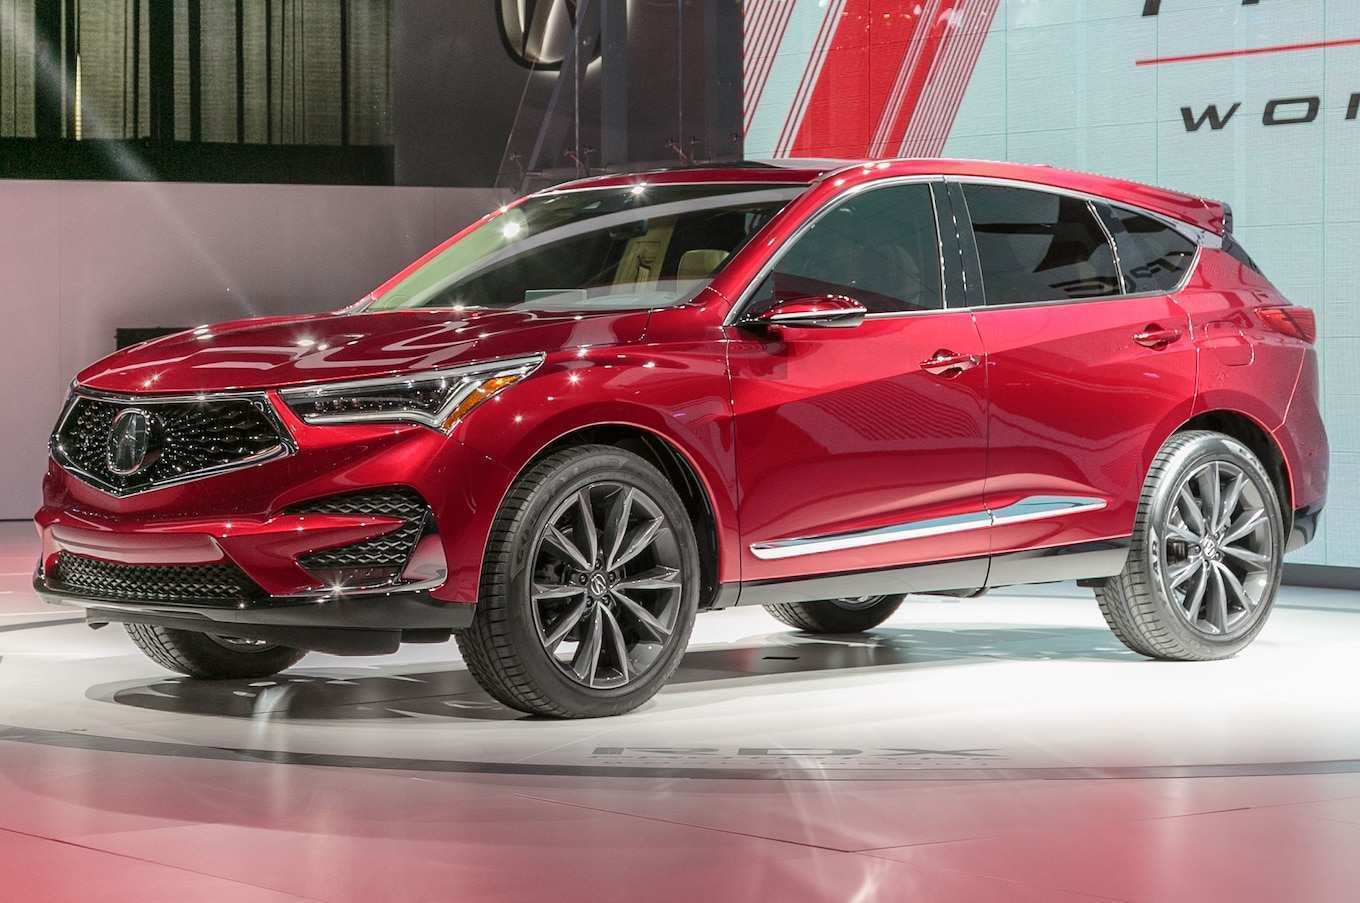 38 Gallery of 2019 Acura Rdx Engine Redesign and Concept with 2019 Acura Rdx Engine